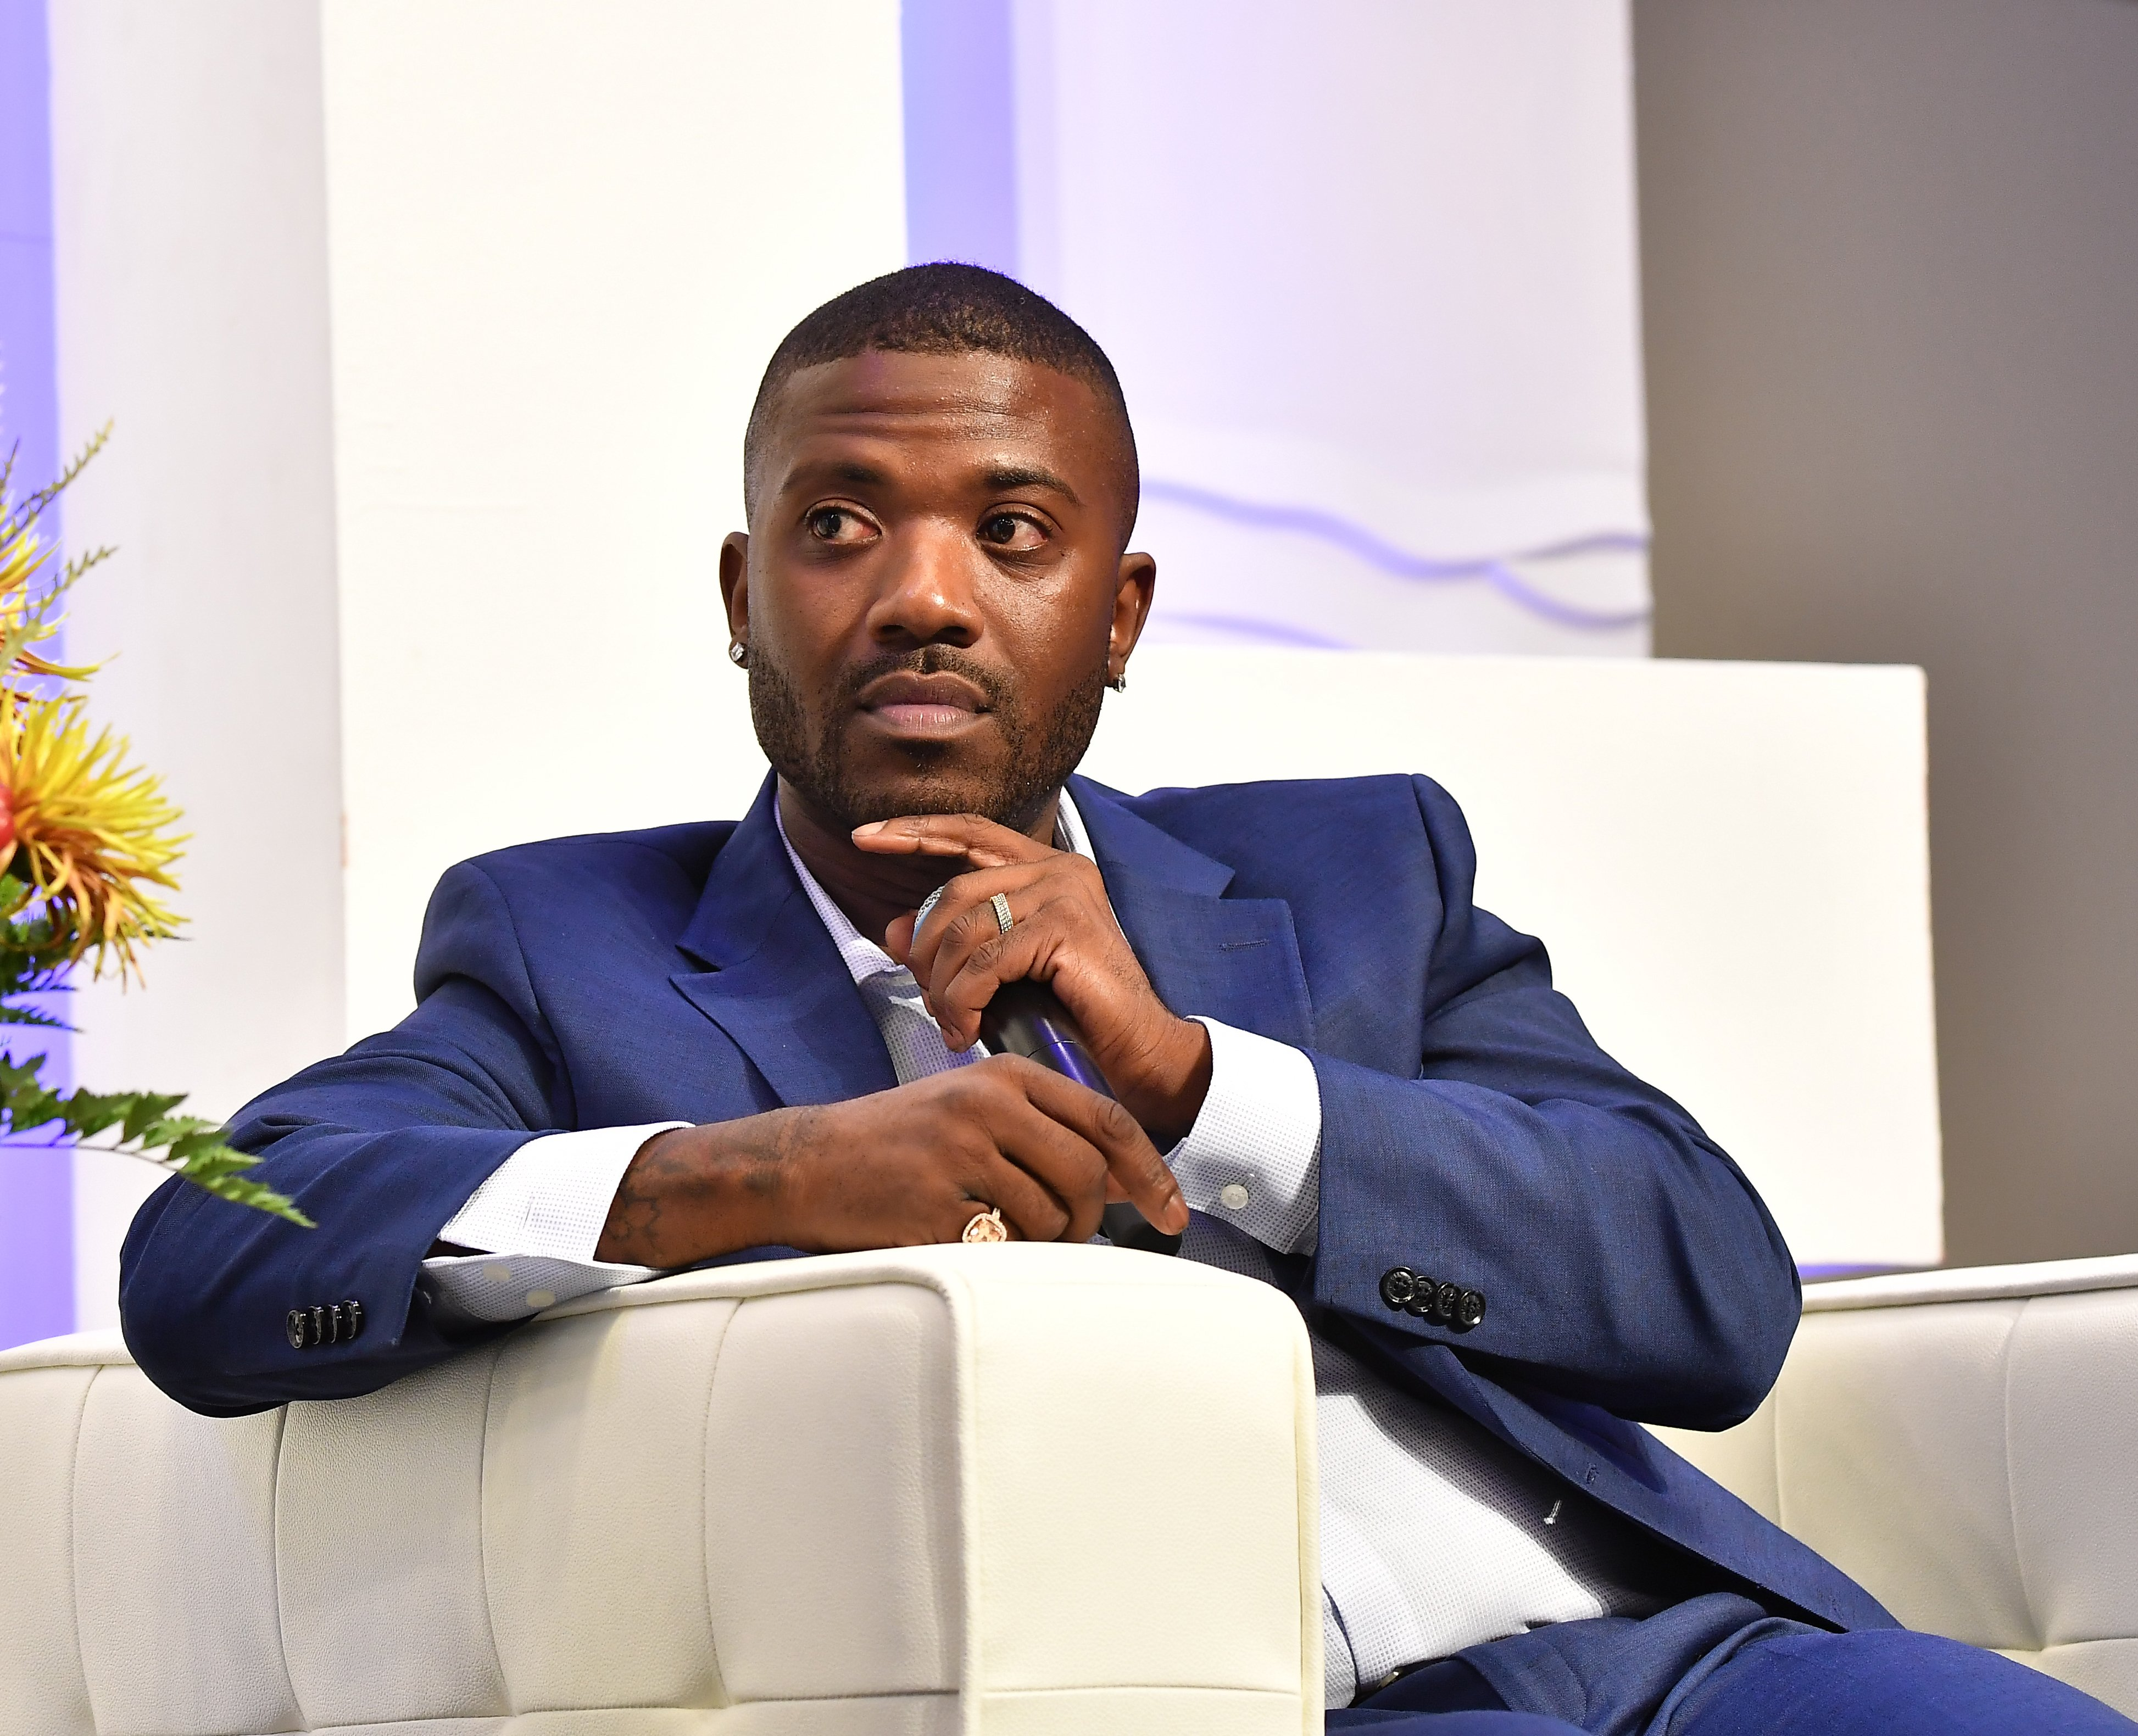 Singer/television personality Ray J speaks onstage during RollingOut 2018 Ride Conference at Loudermilk Conference Center on September 28, 2018 | Photo: Getty Images